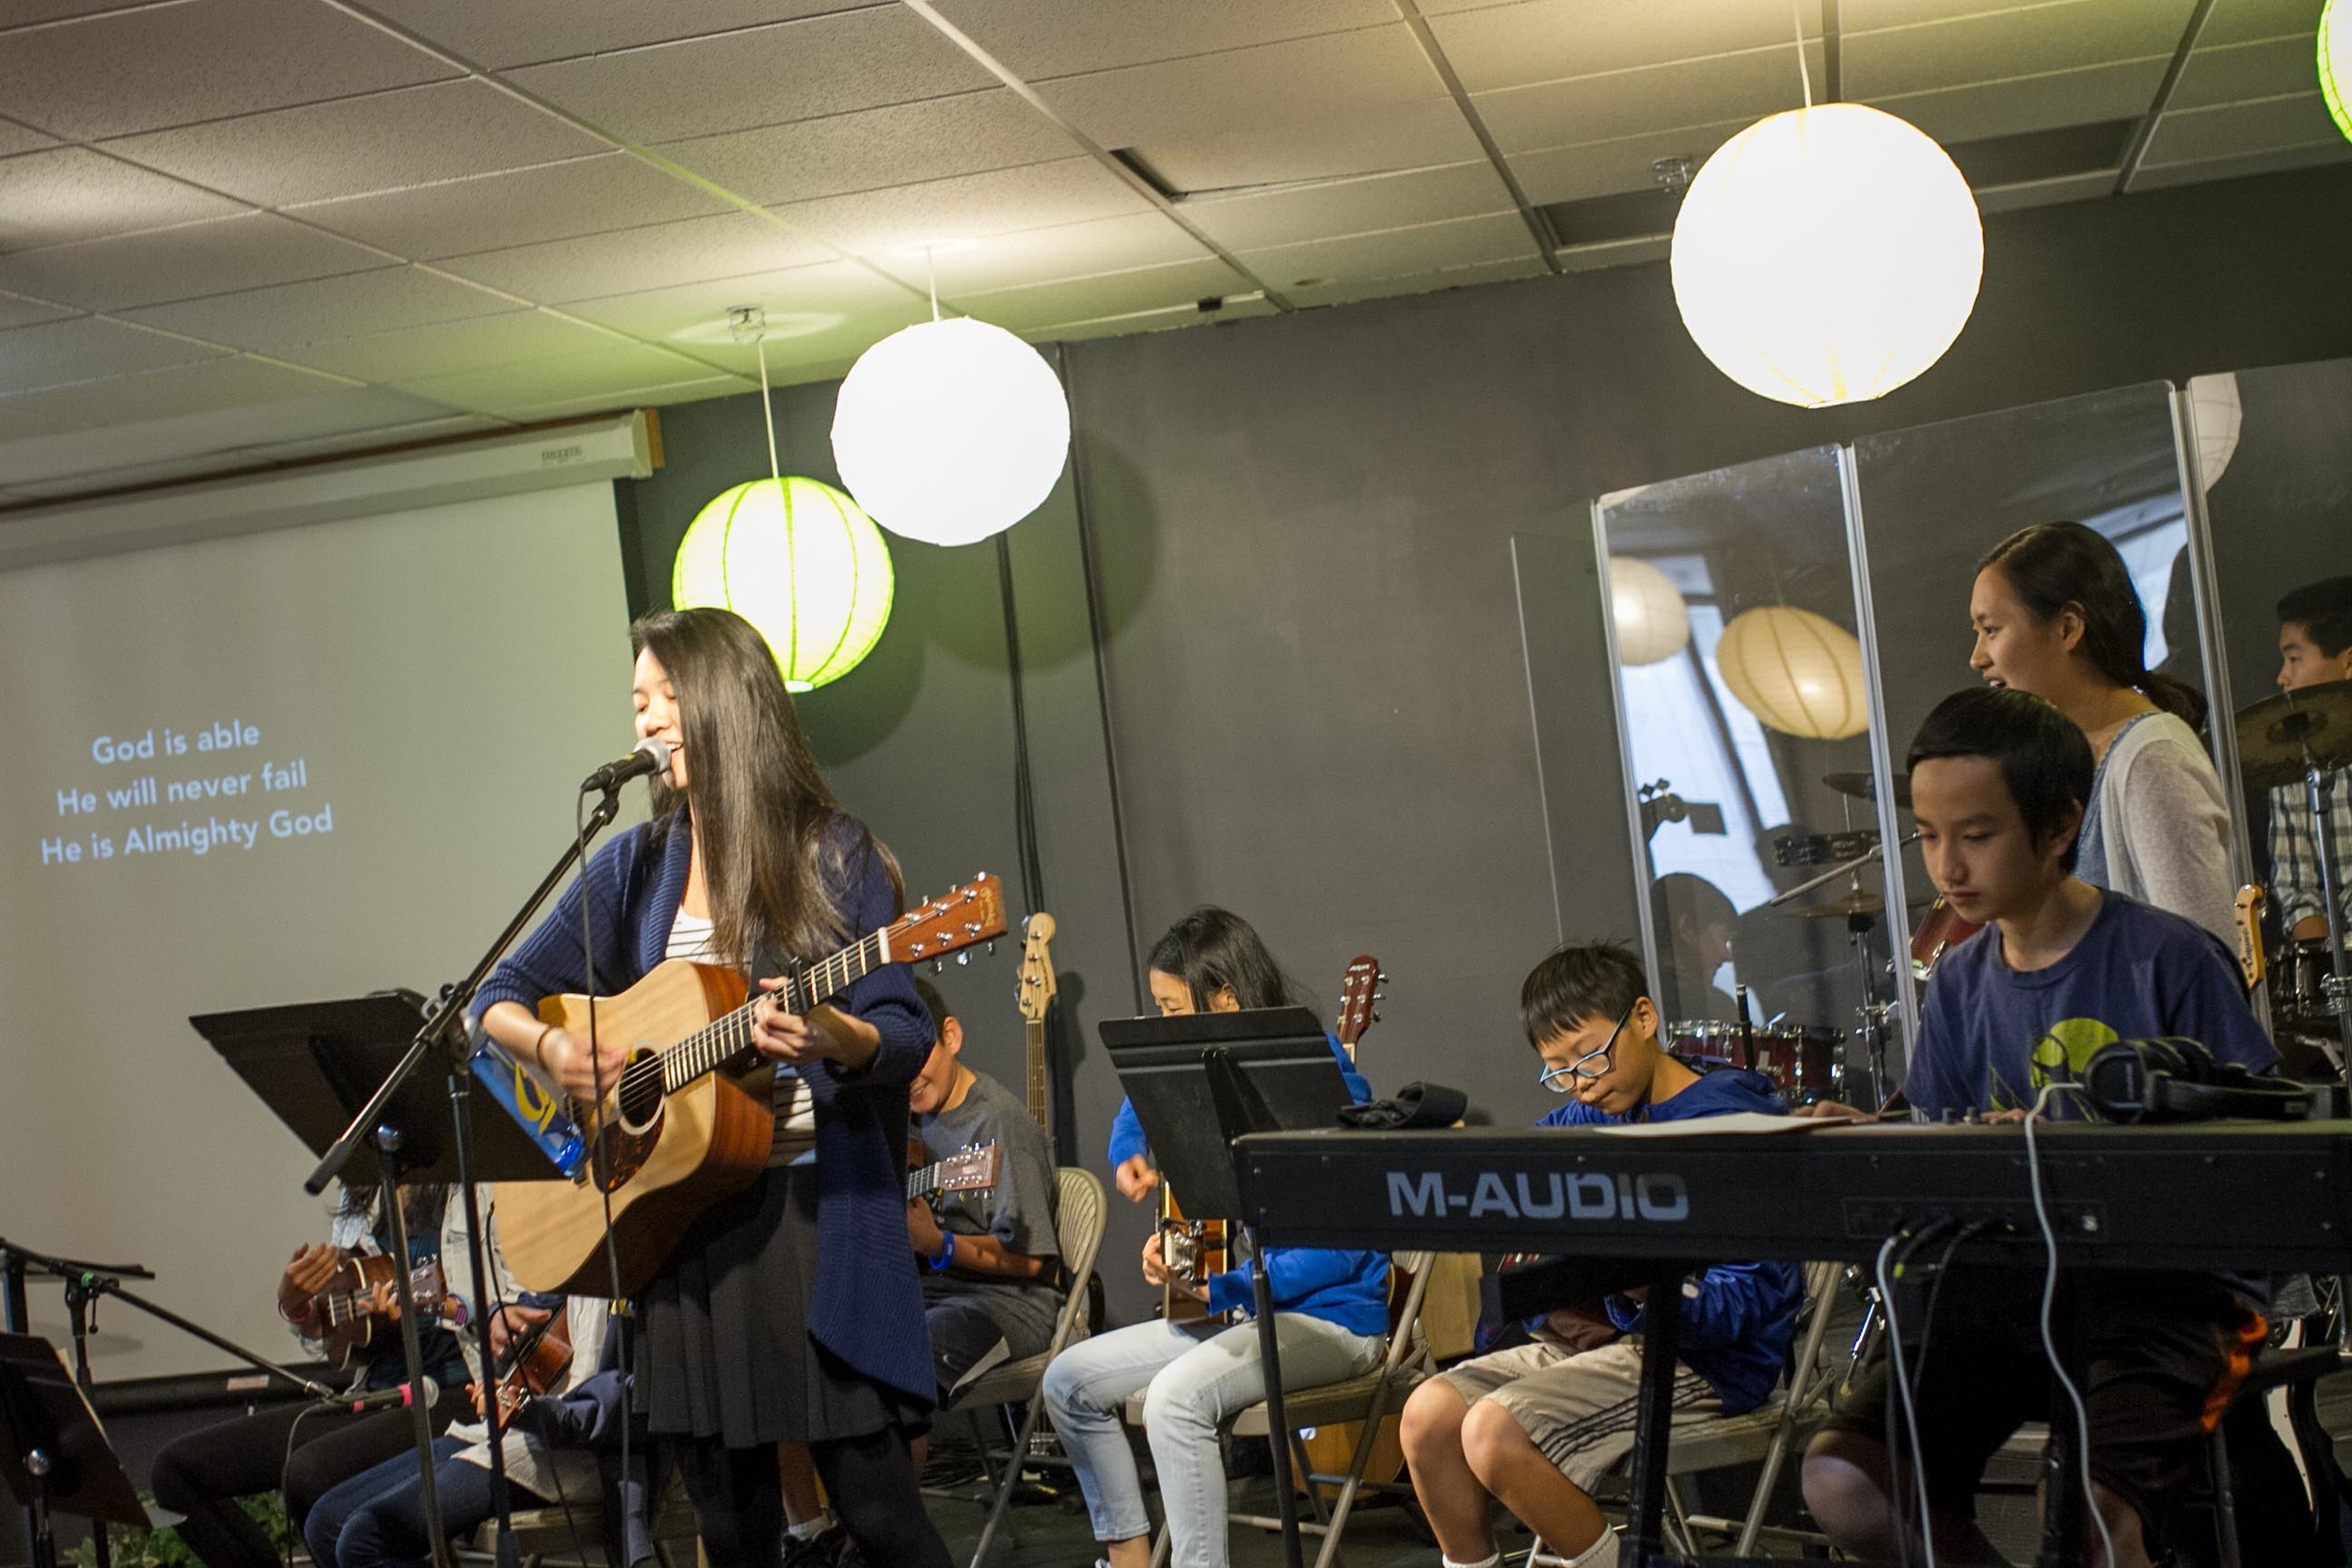 """For the final act, our students performed the song """"God Is Able.""""Our band featured all of ourinstrumentals teams: bass guitar, acoustic guitar, keys, drums, and..."""